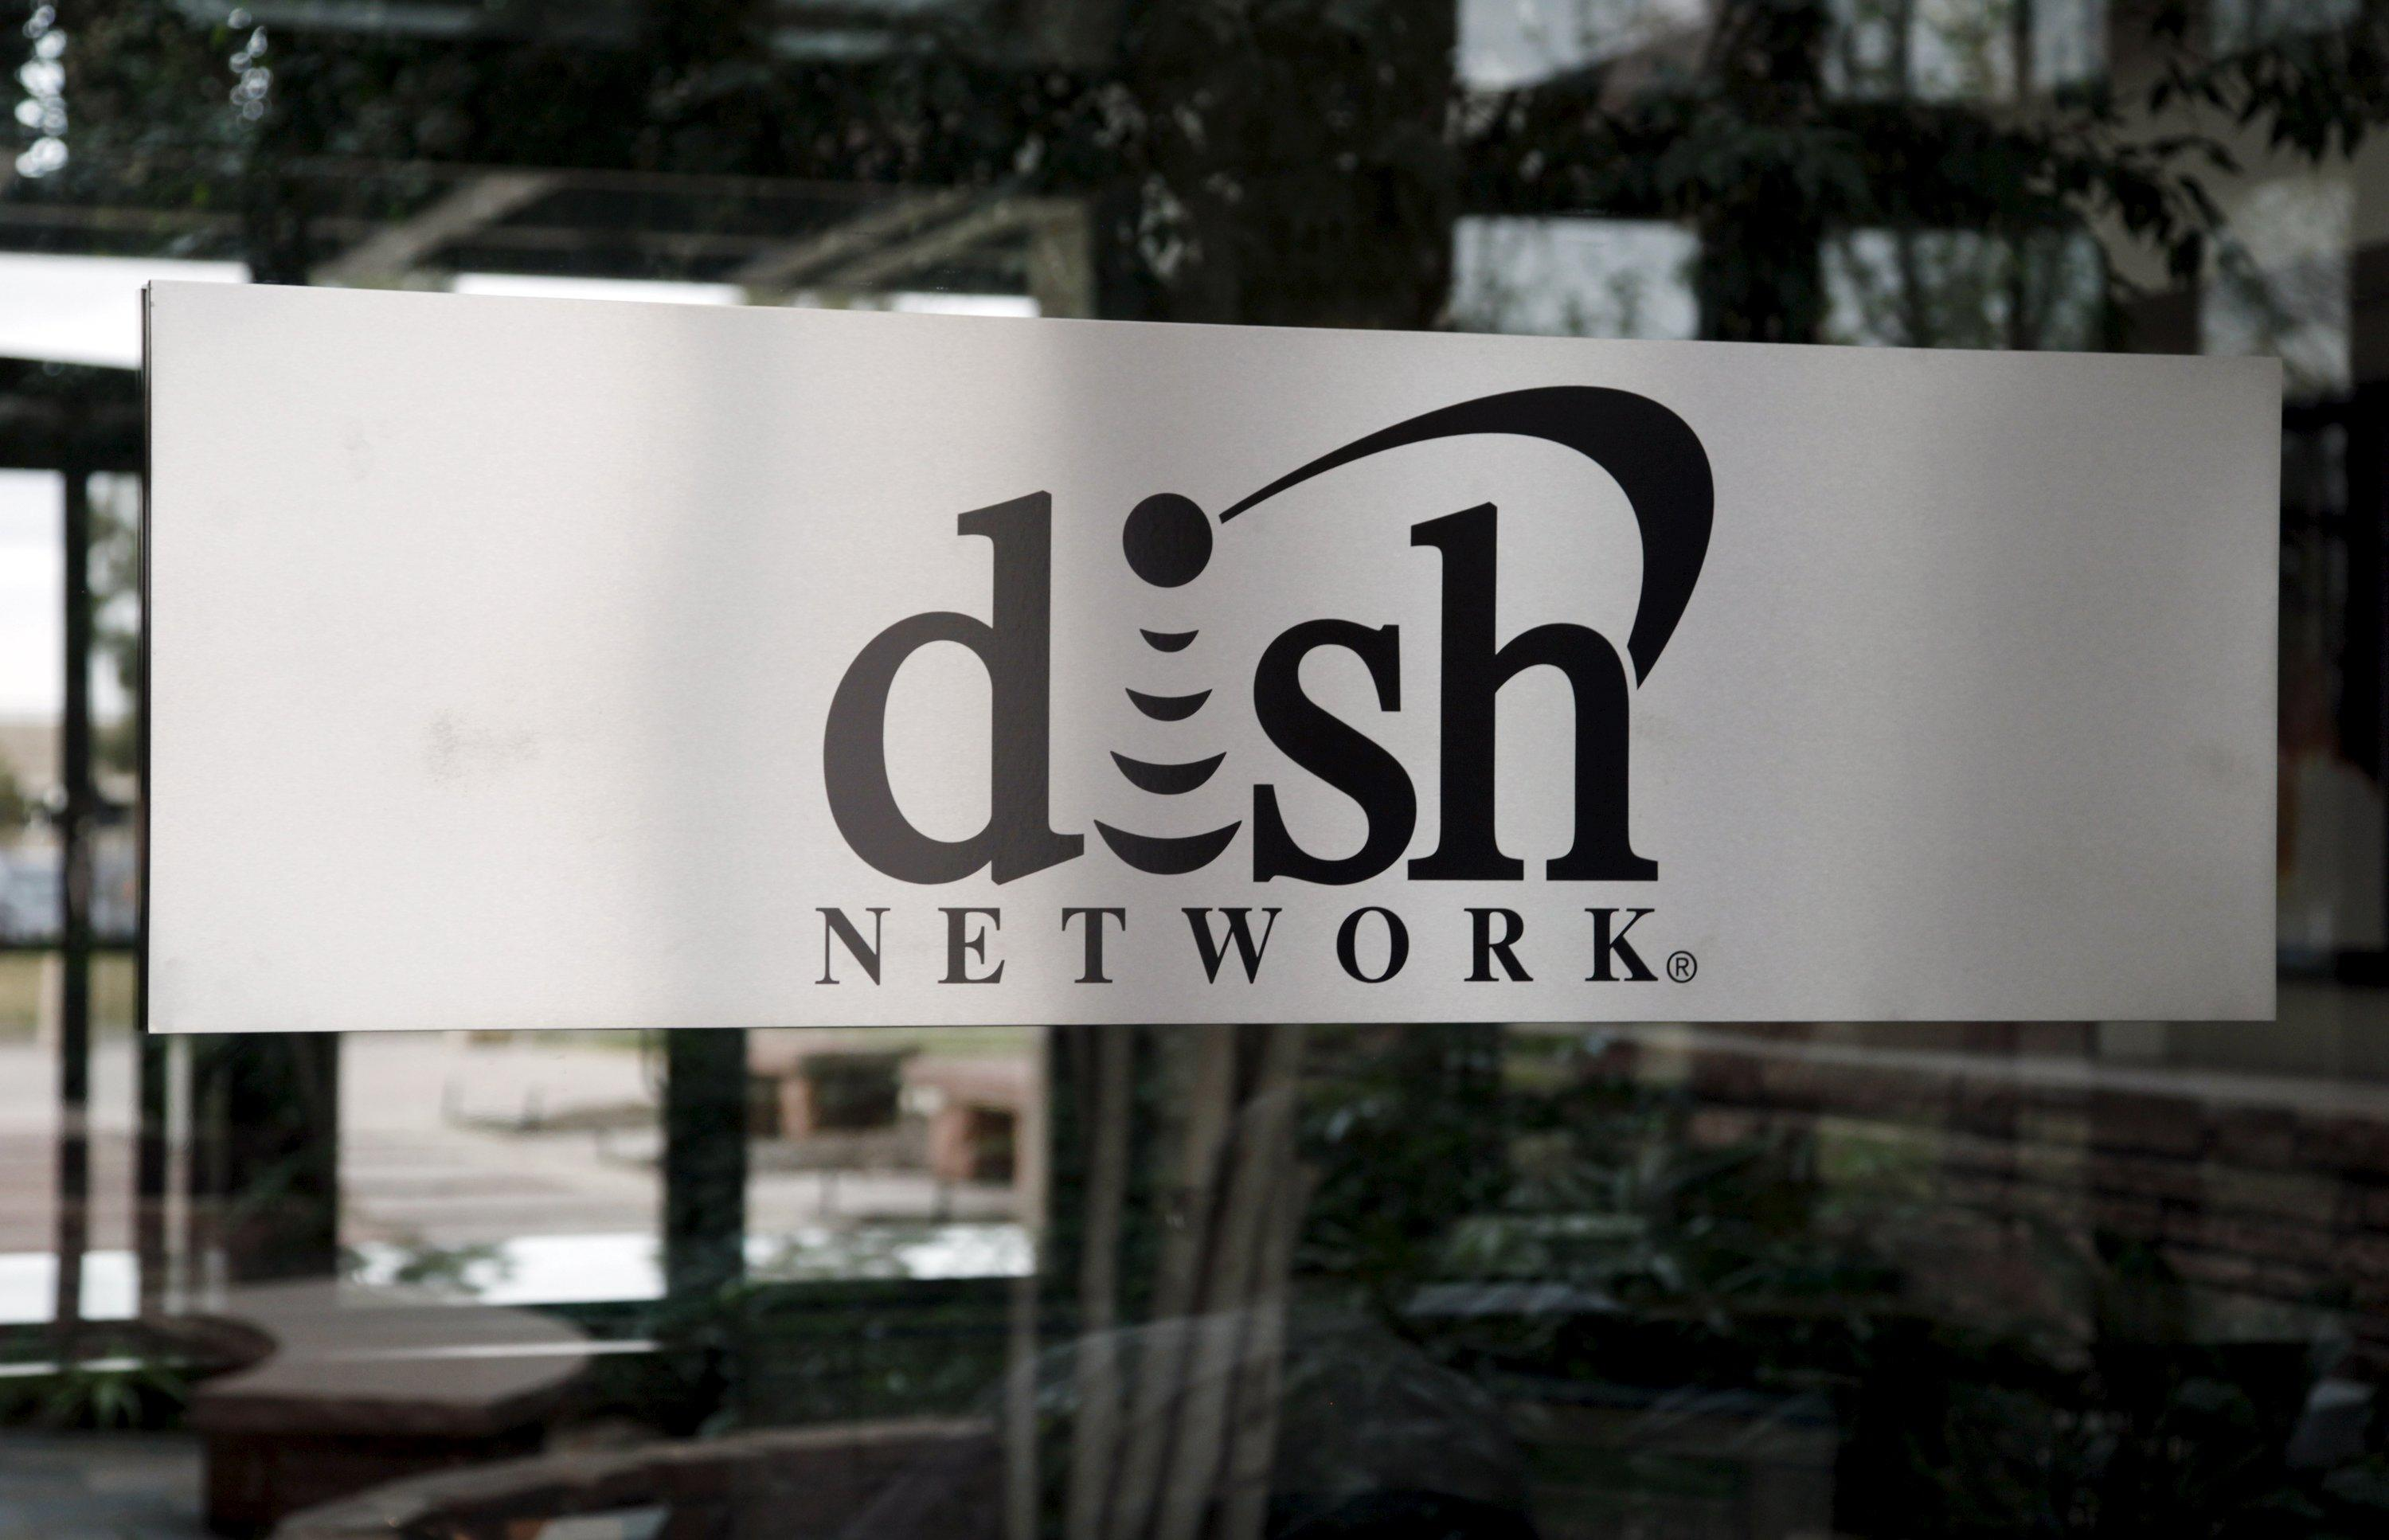 Mine the working at dish network sucks for